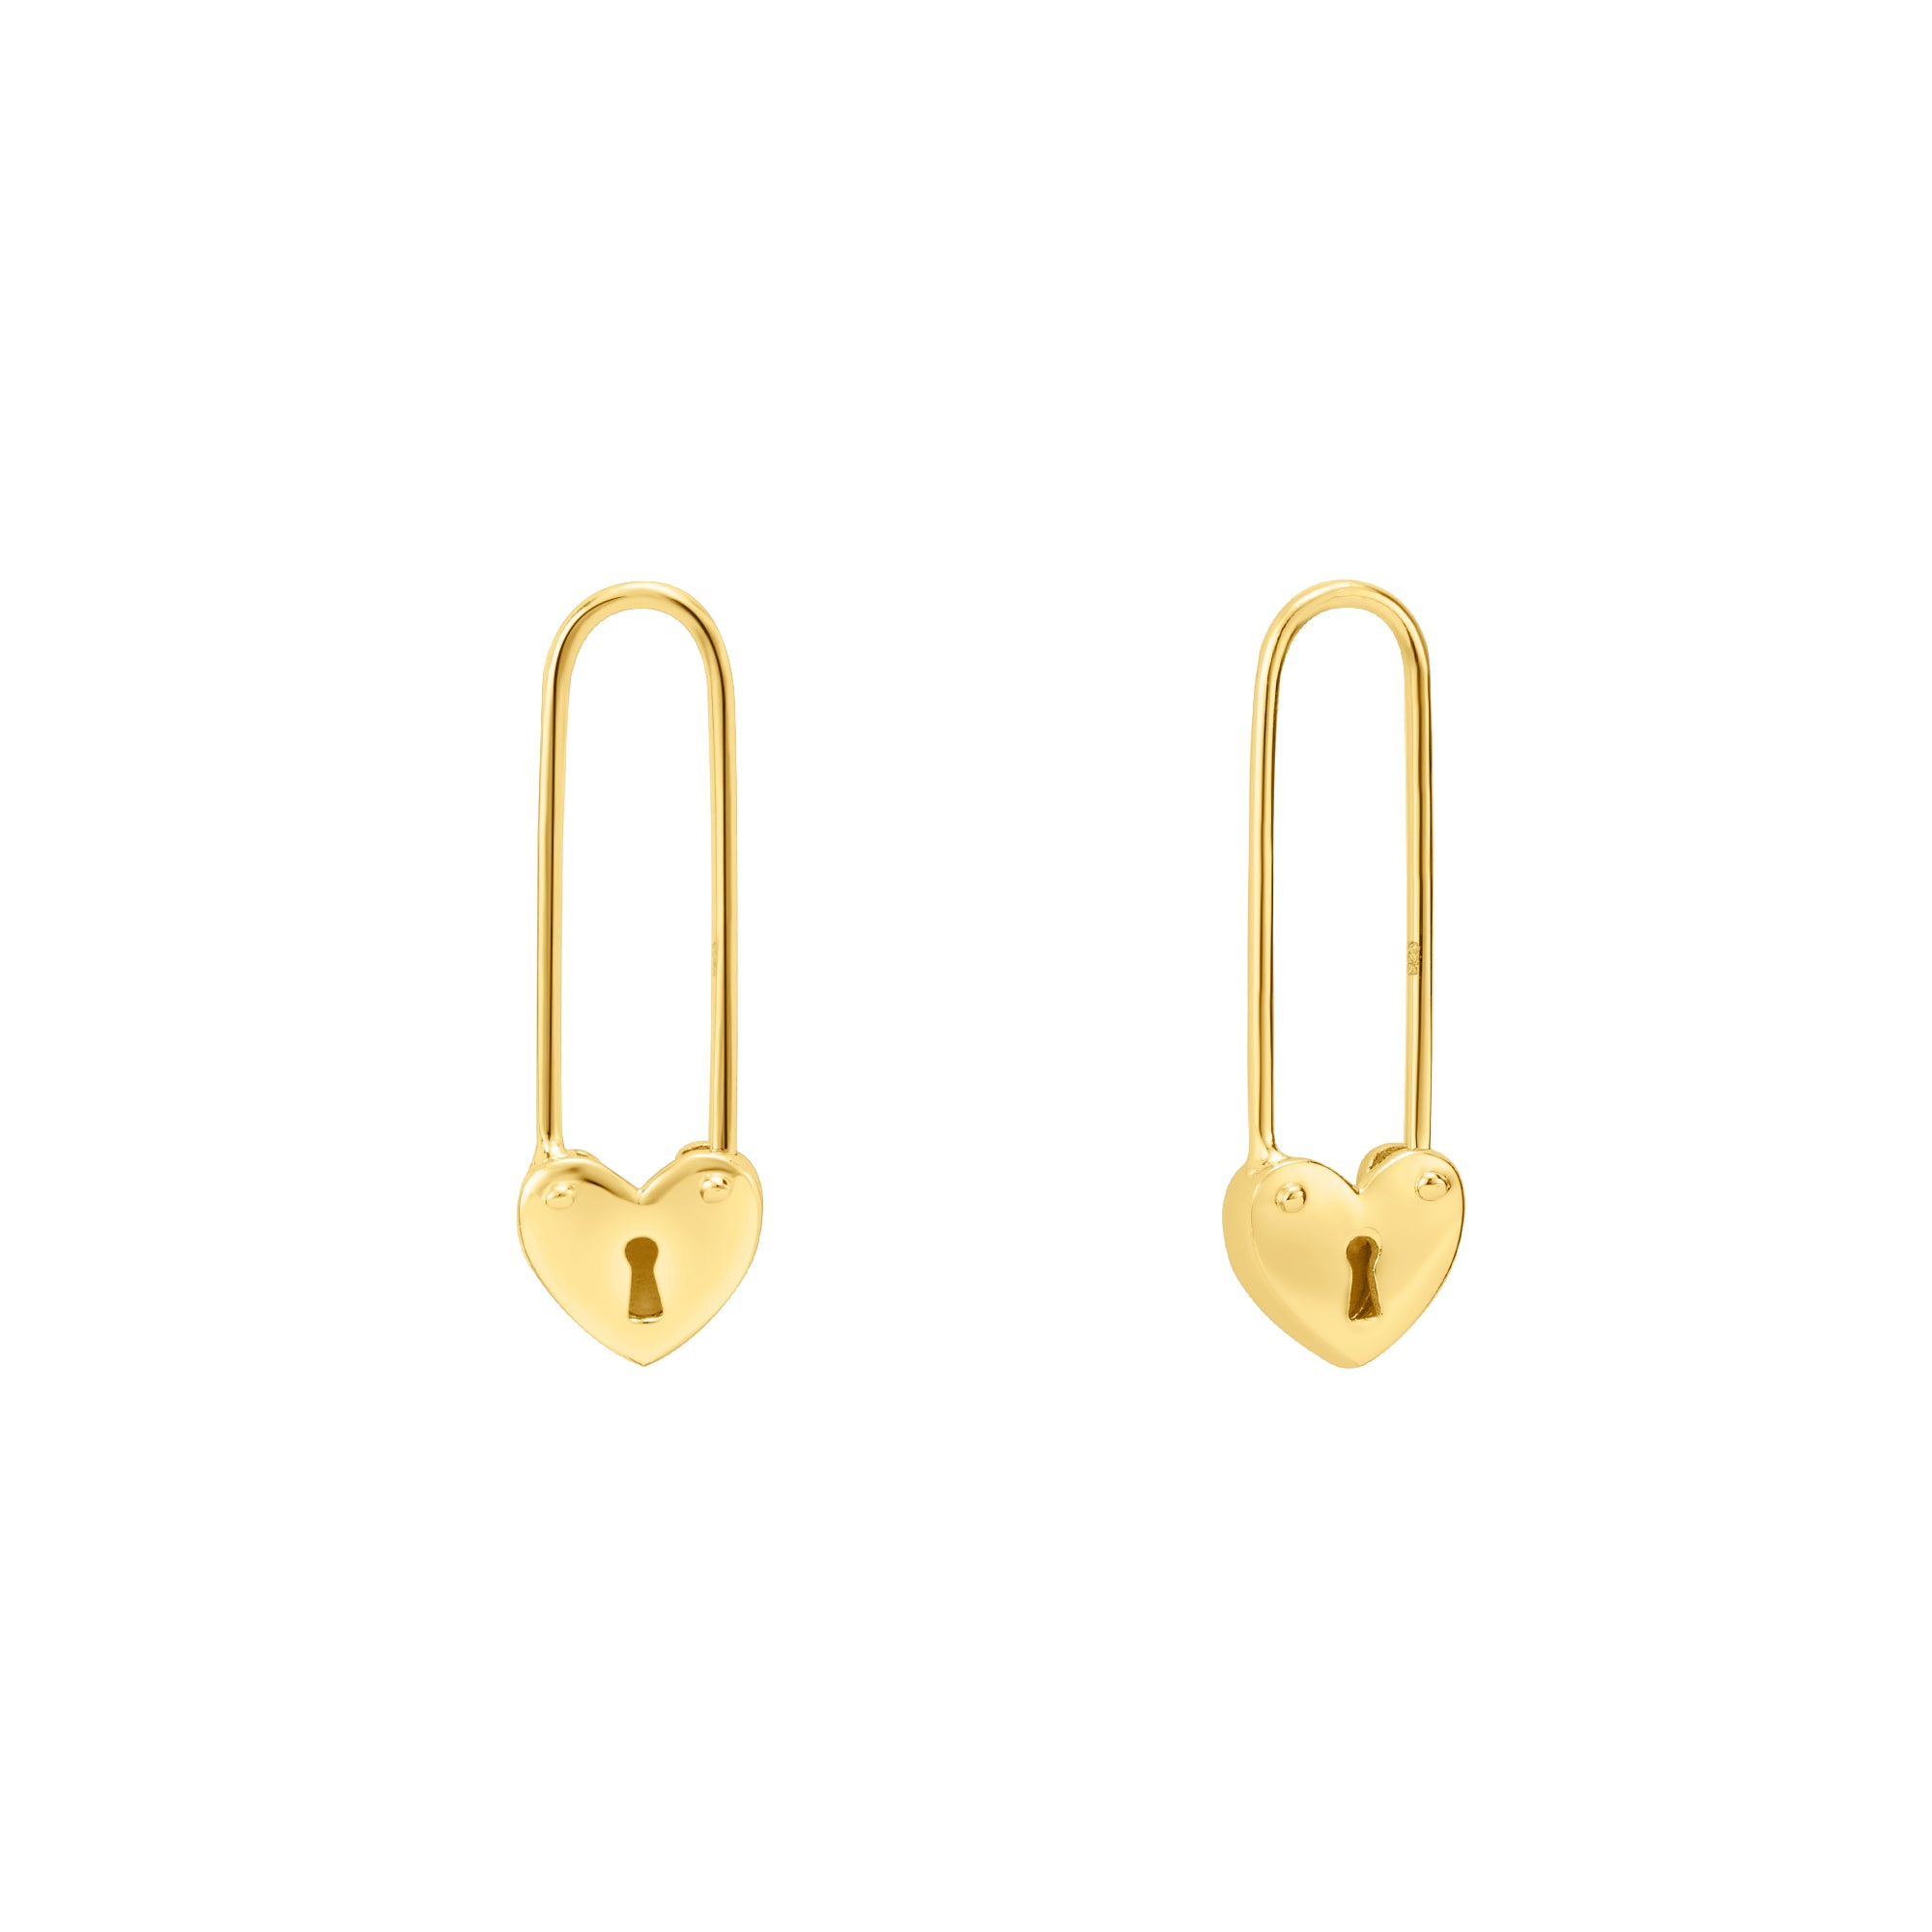 Egeria | Daisy Earrings | 14K Gold Plated 925 Silver